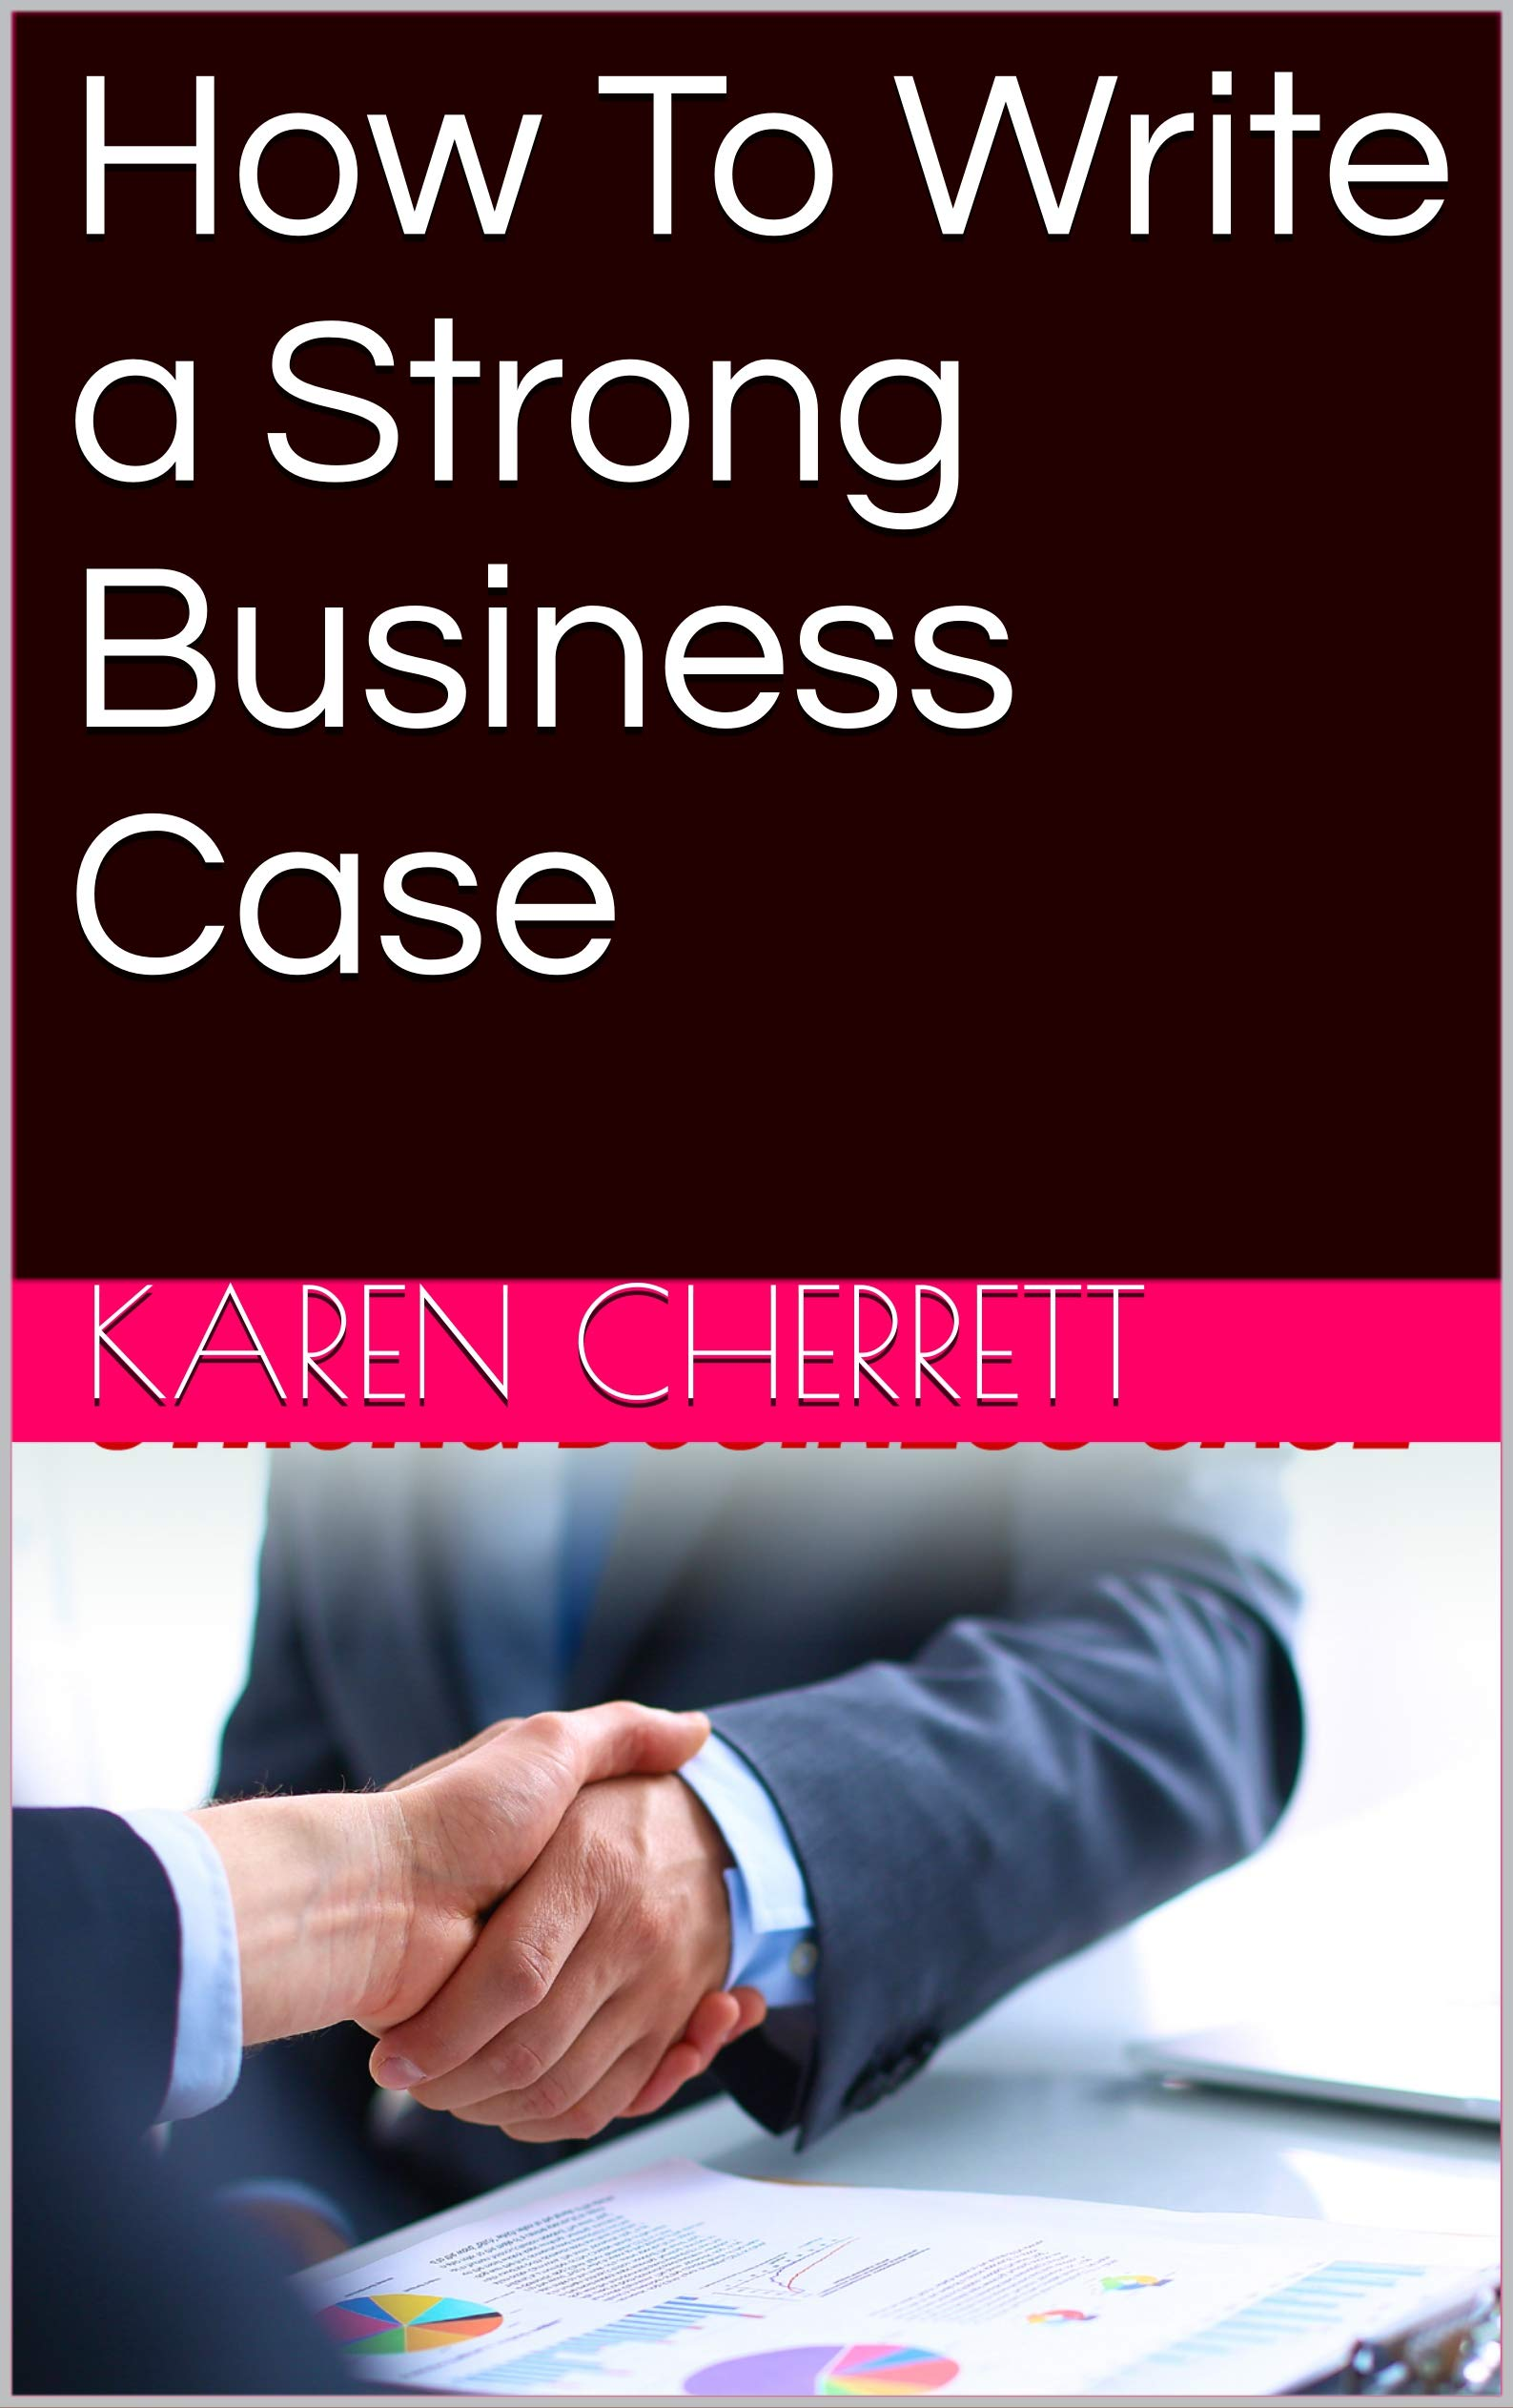 How To Write a Strong Business Case